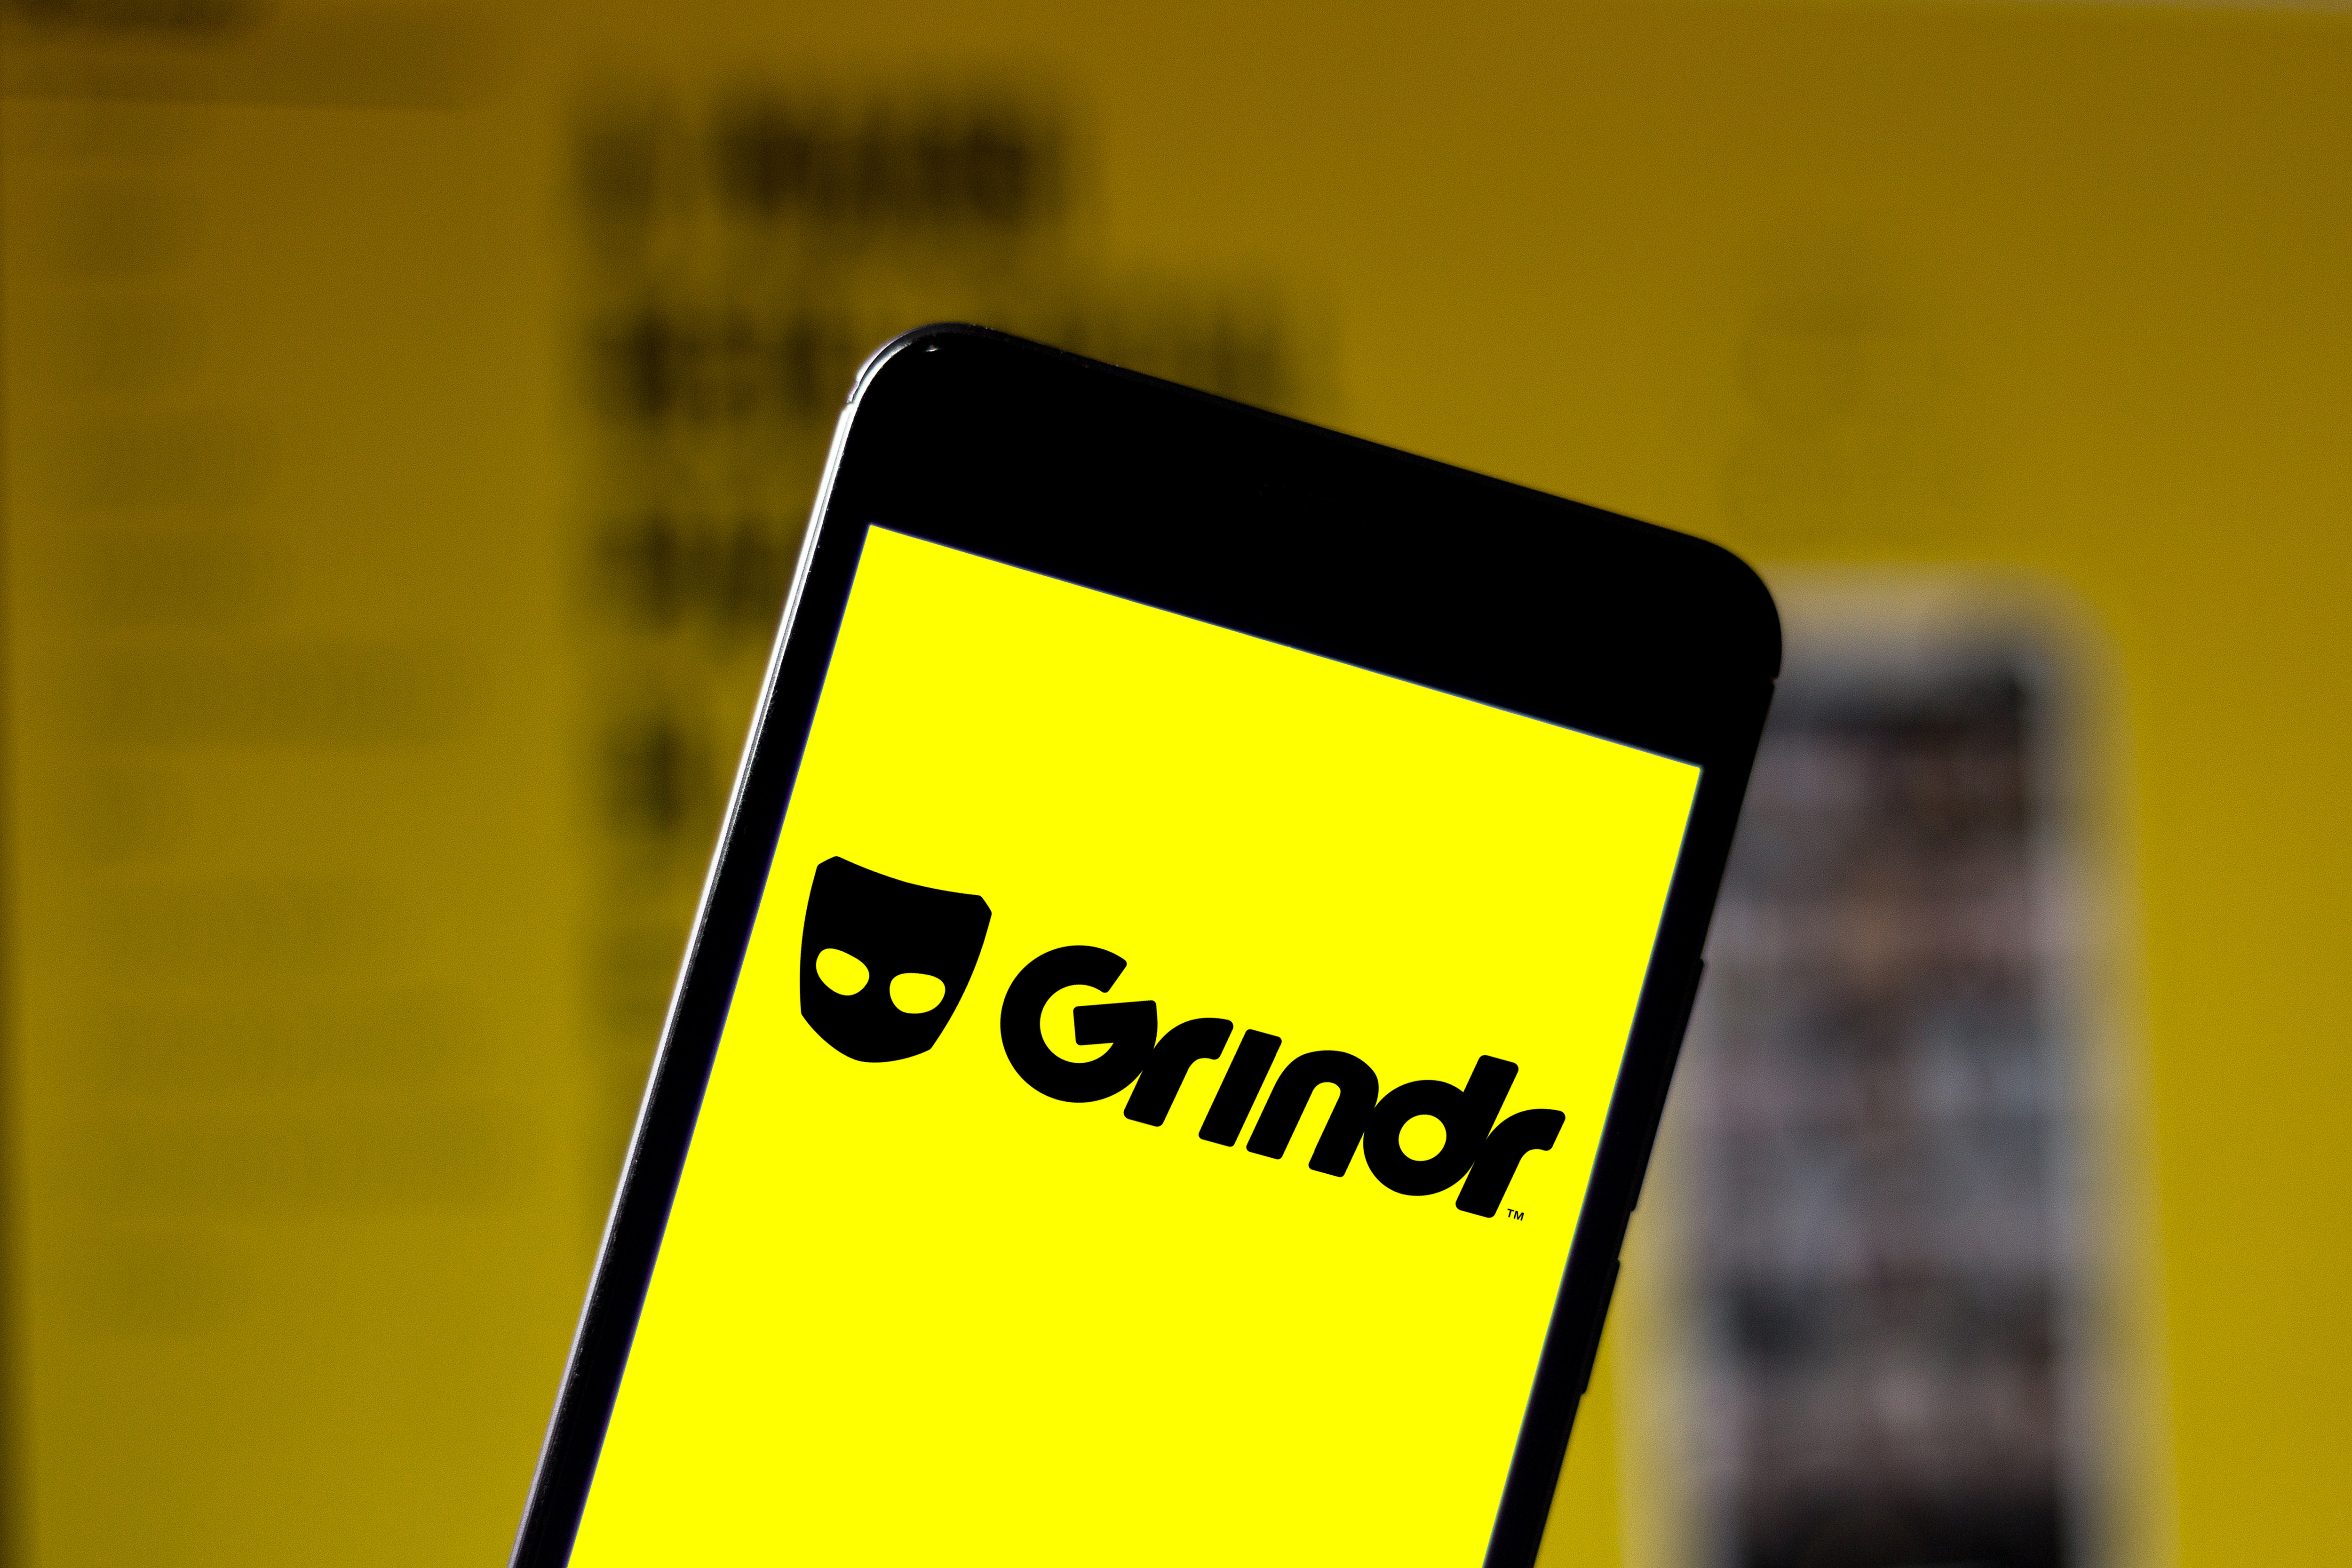 Grindr says credentials changed